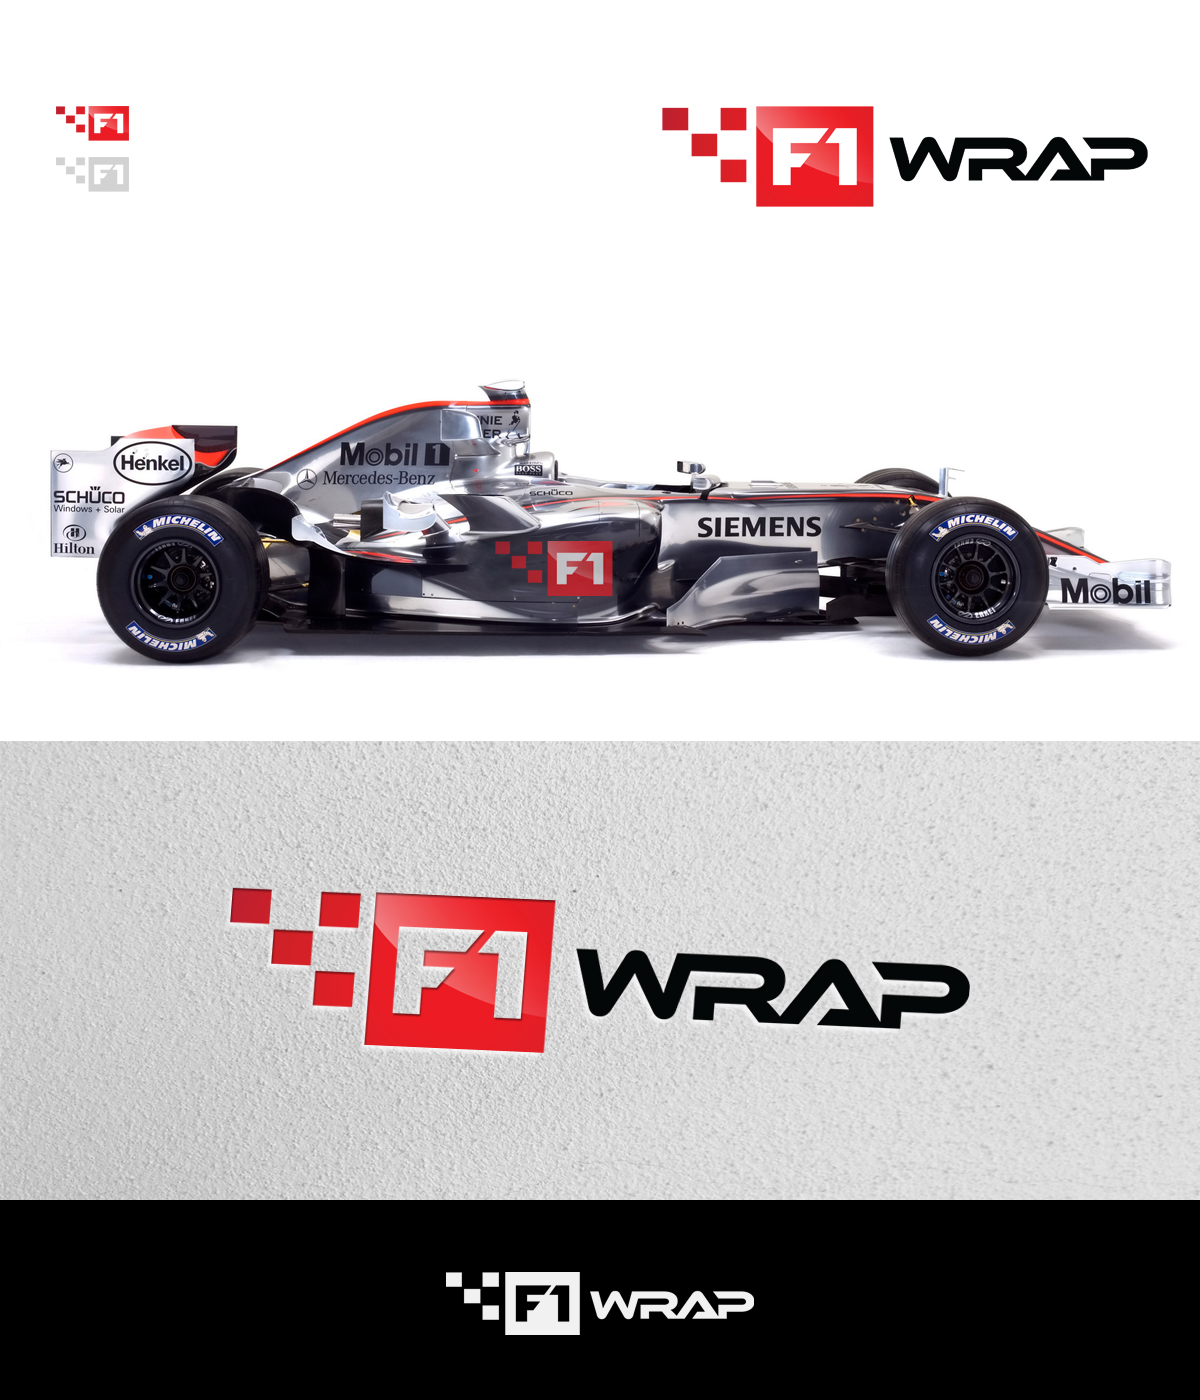 New logo wanted for F1 WRAP